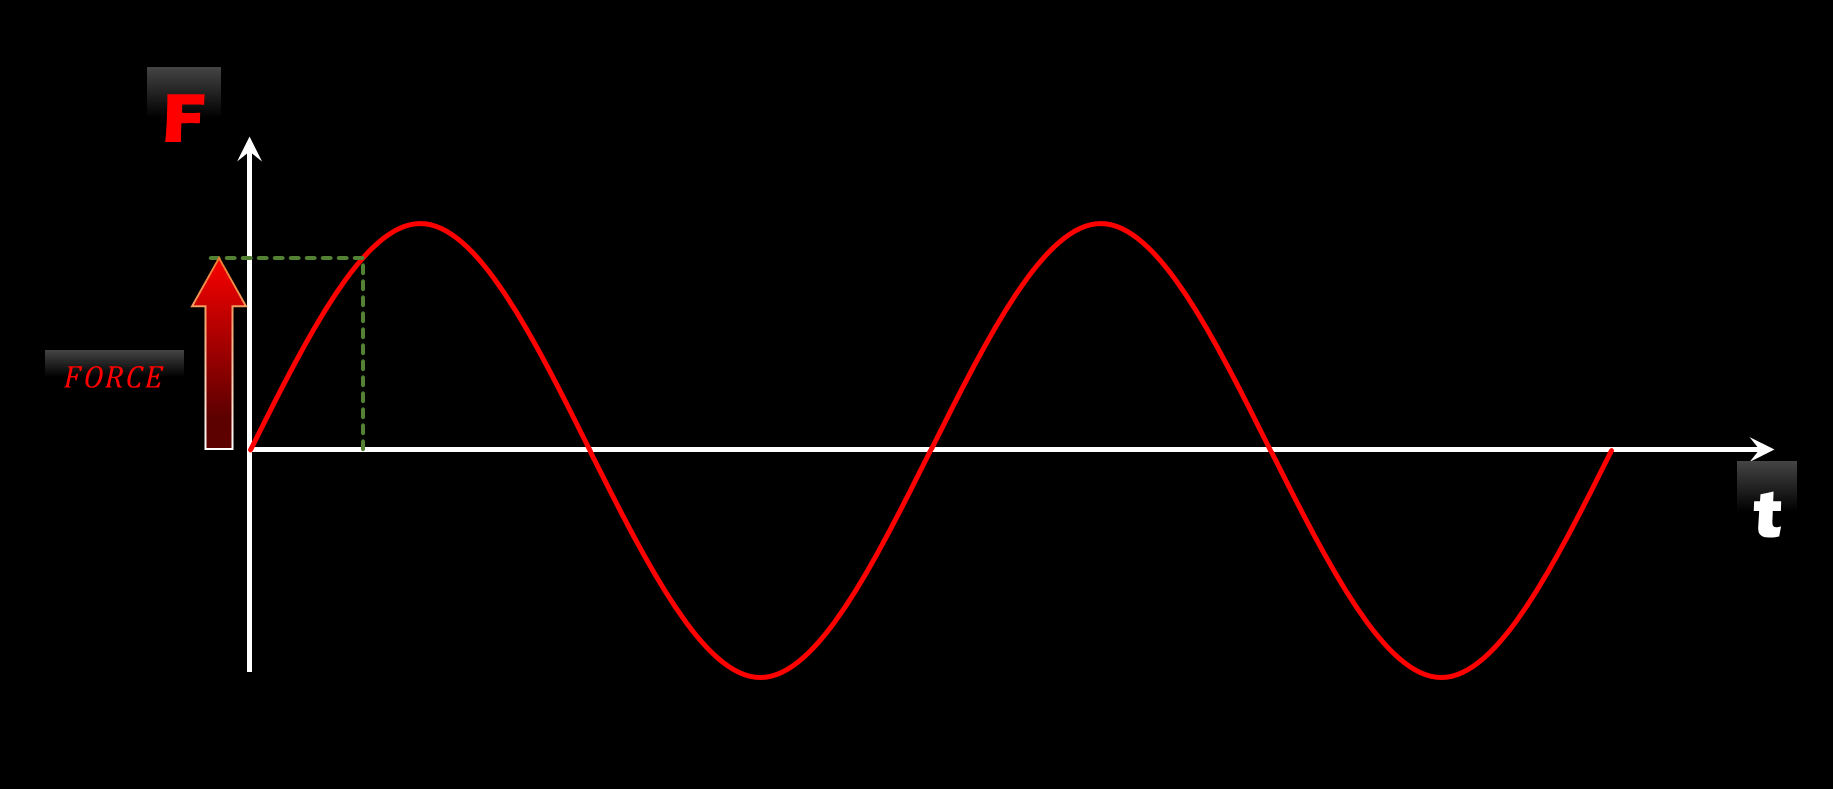 hight resolution of meaning the force keeps changing it s strength and it s direction as shown in the below graph